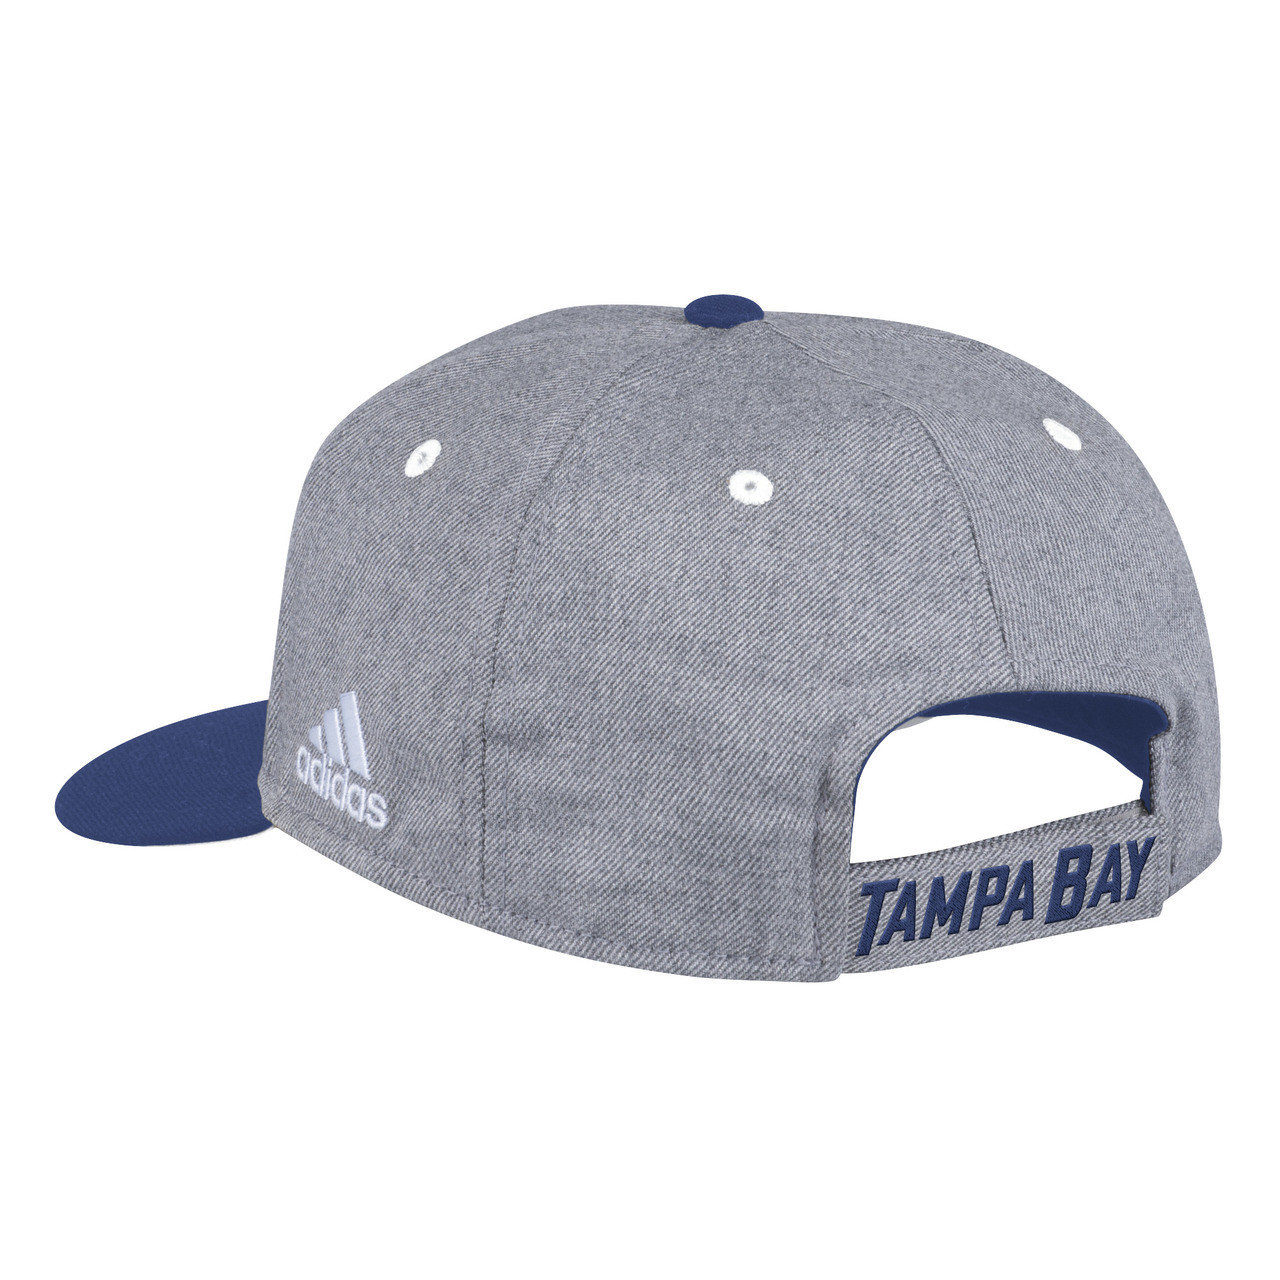 94ee2e2a ... Tampa Bay Lightning adidas Two Tone Structured Adjustable Hat. Add to  Cart